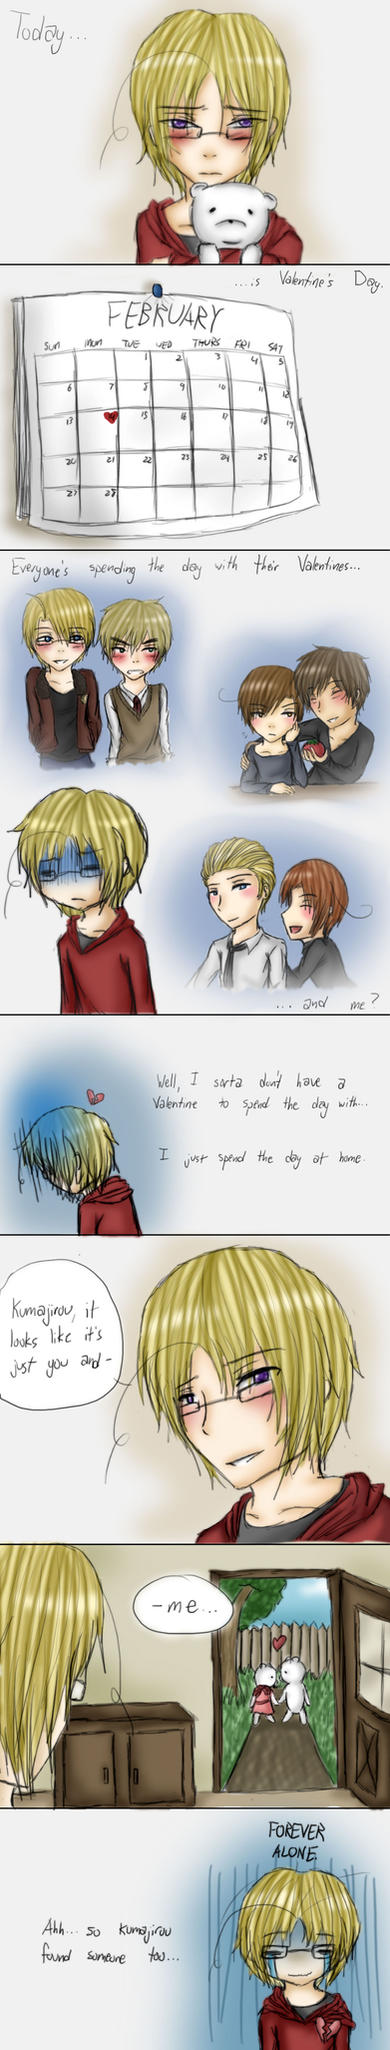 Just Another SAD Day - Part 1 by Imeria